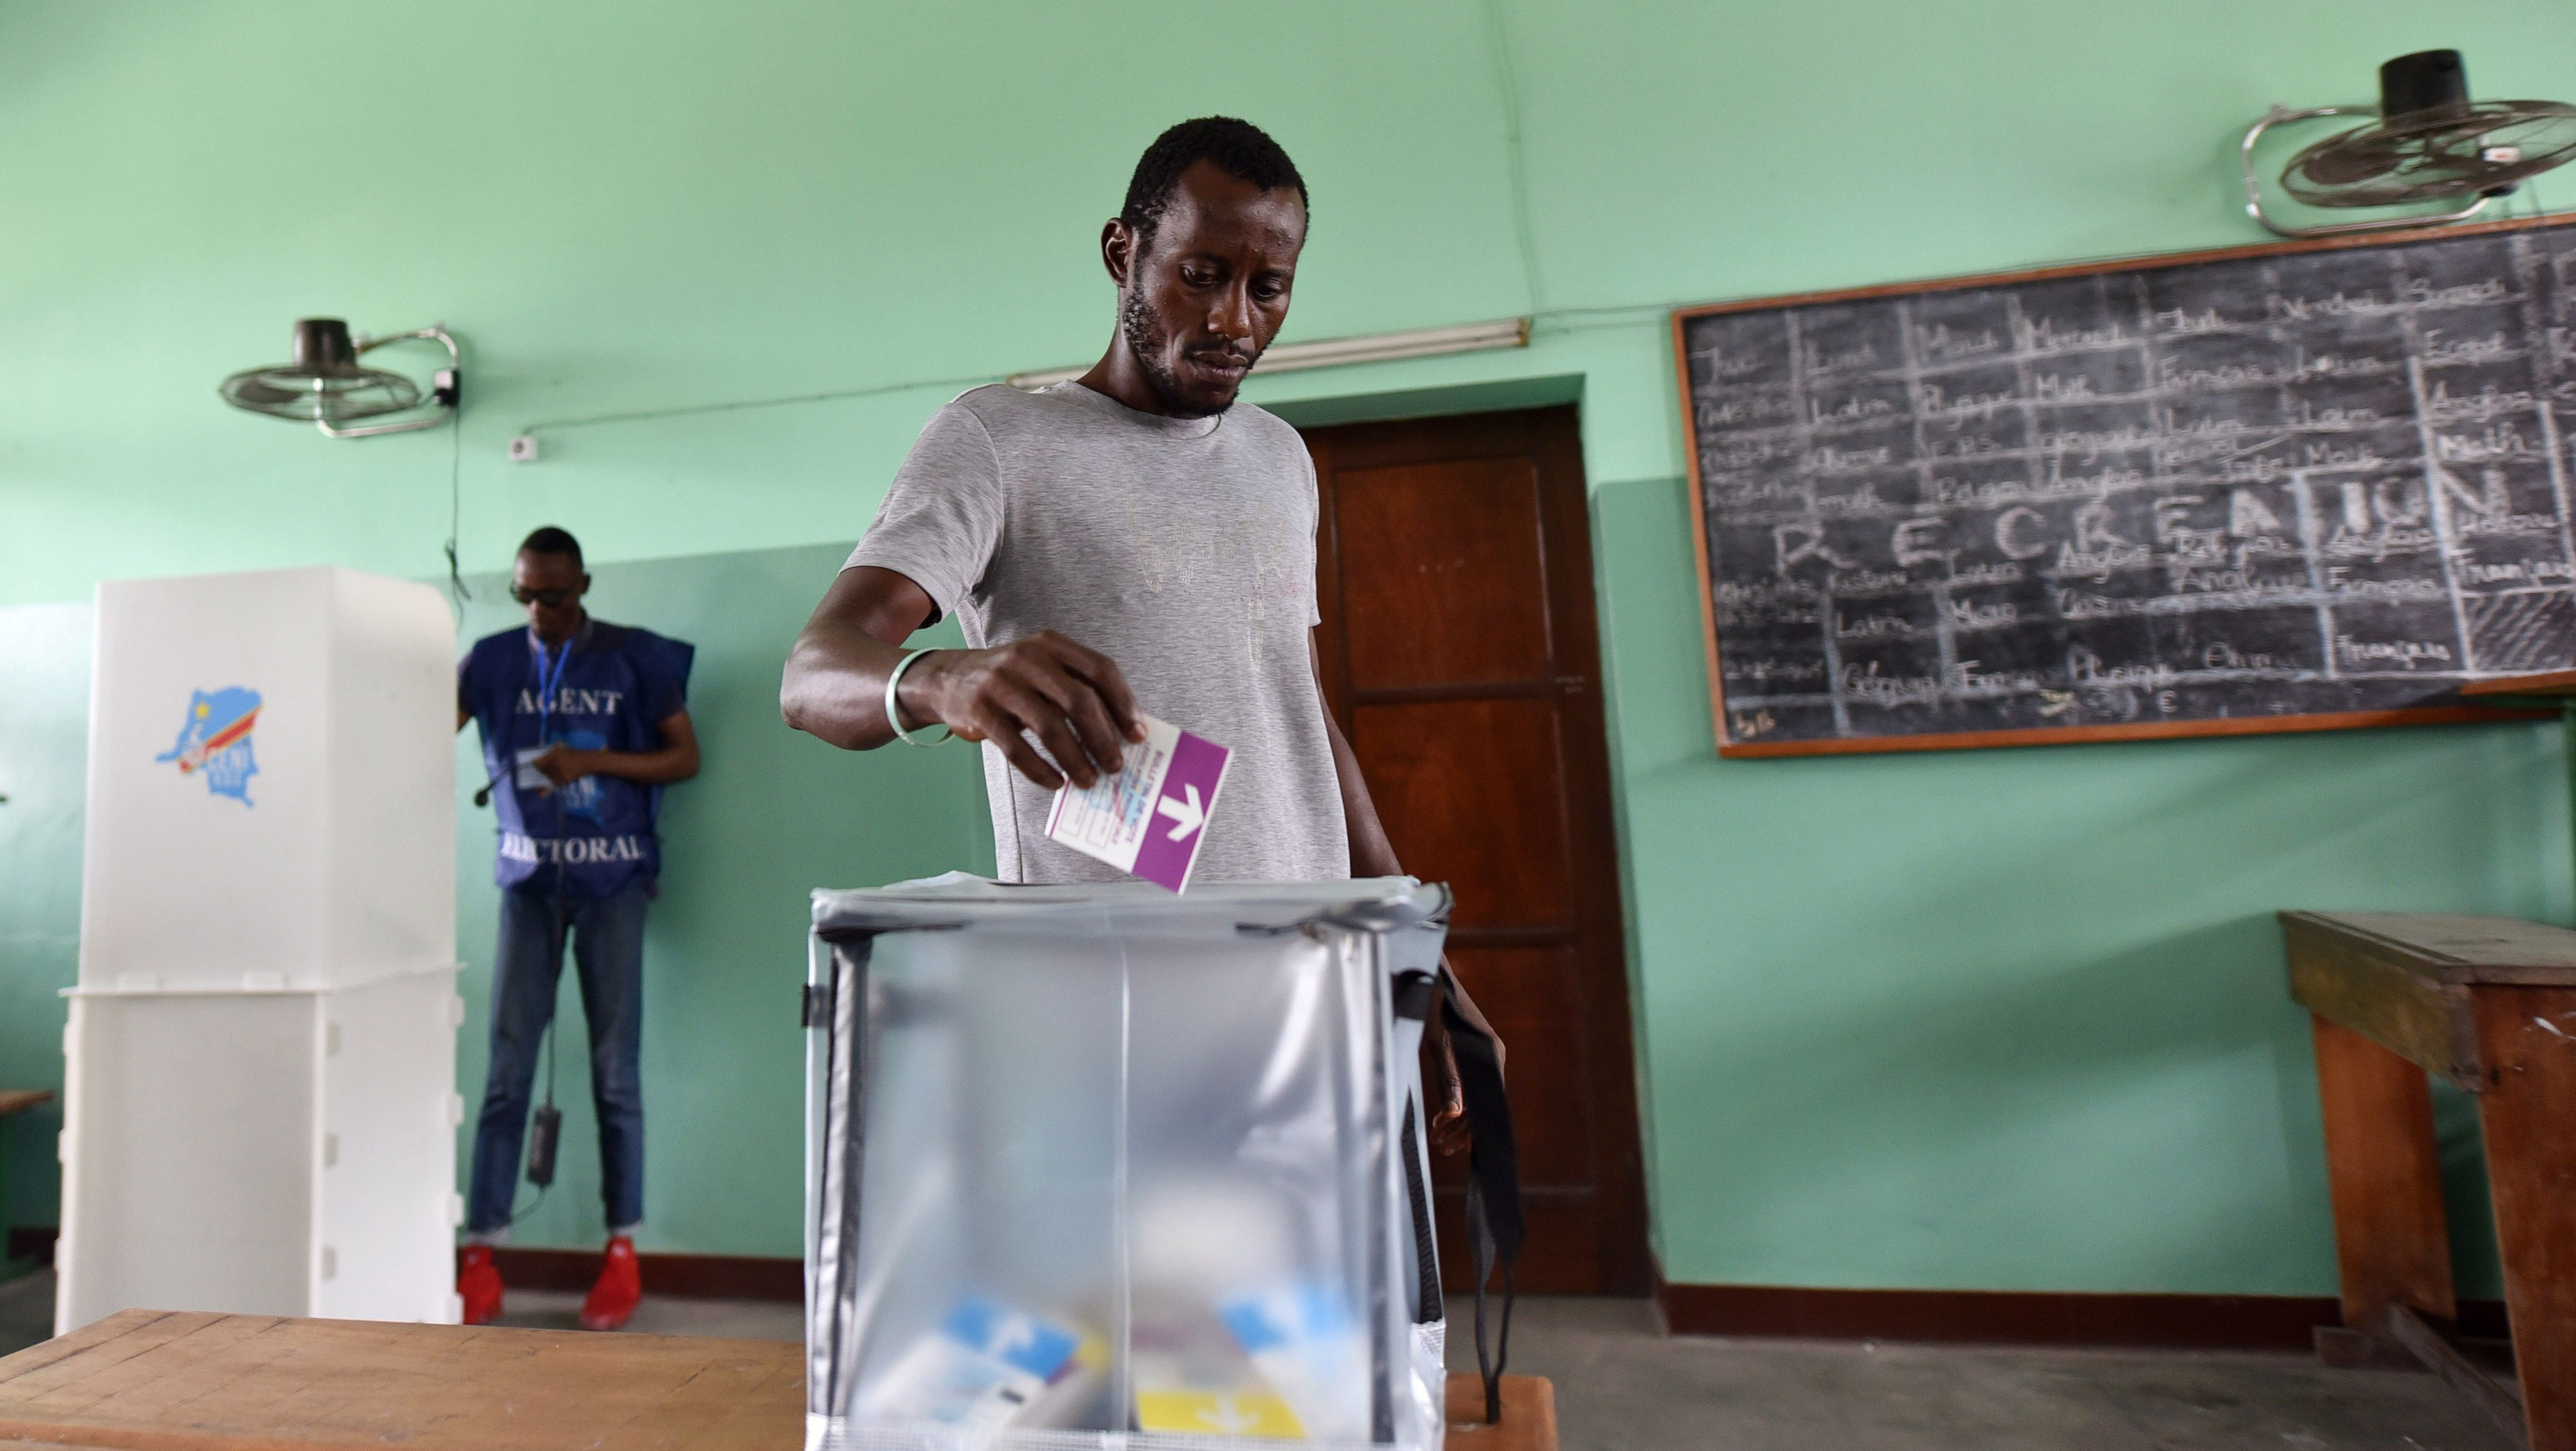 DRC shuts down internet, SMS ahead of election results — Quartz Africa